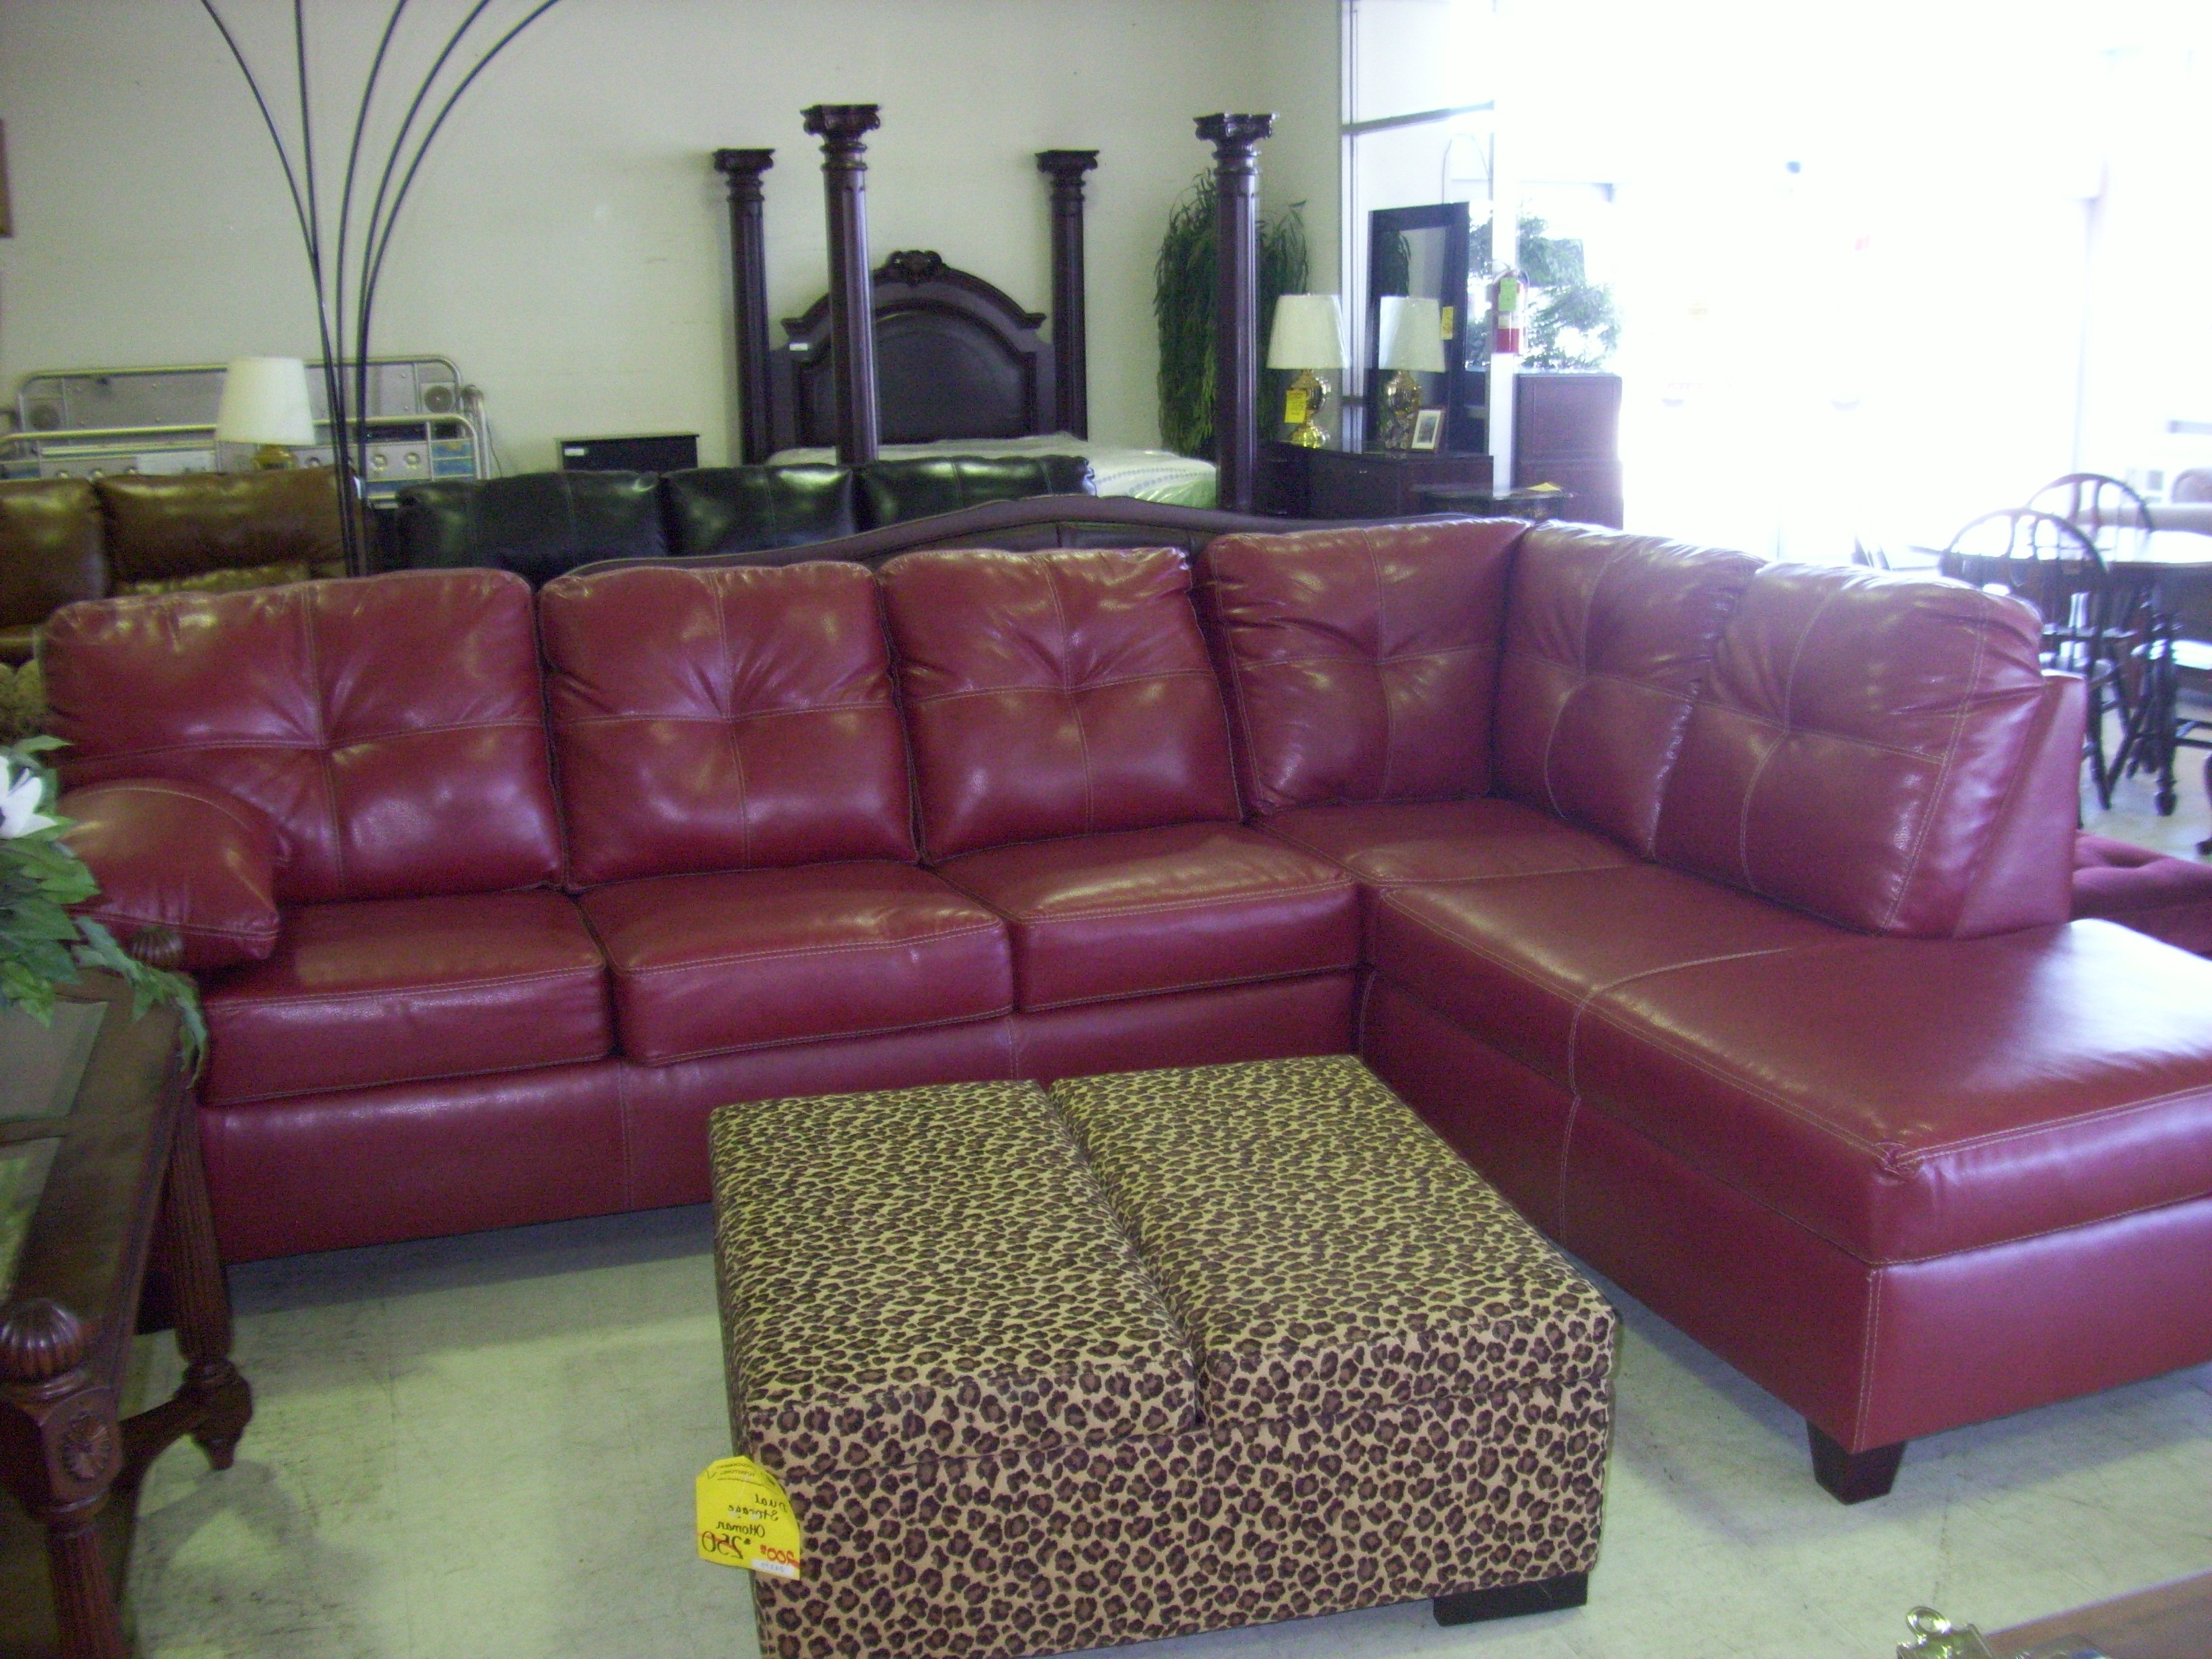 Red Faux Leather Sectionals With Regard To Most Recently Released Exotic L Shaped Red Purple Faux Leather Sofa With Tufted Back Rest (View 13 of 15)